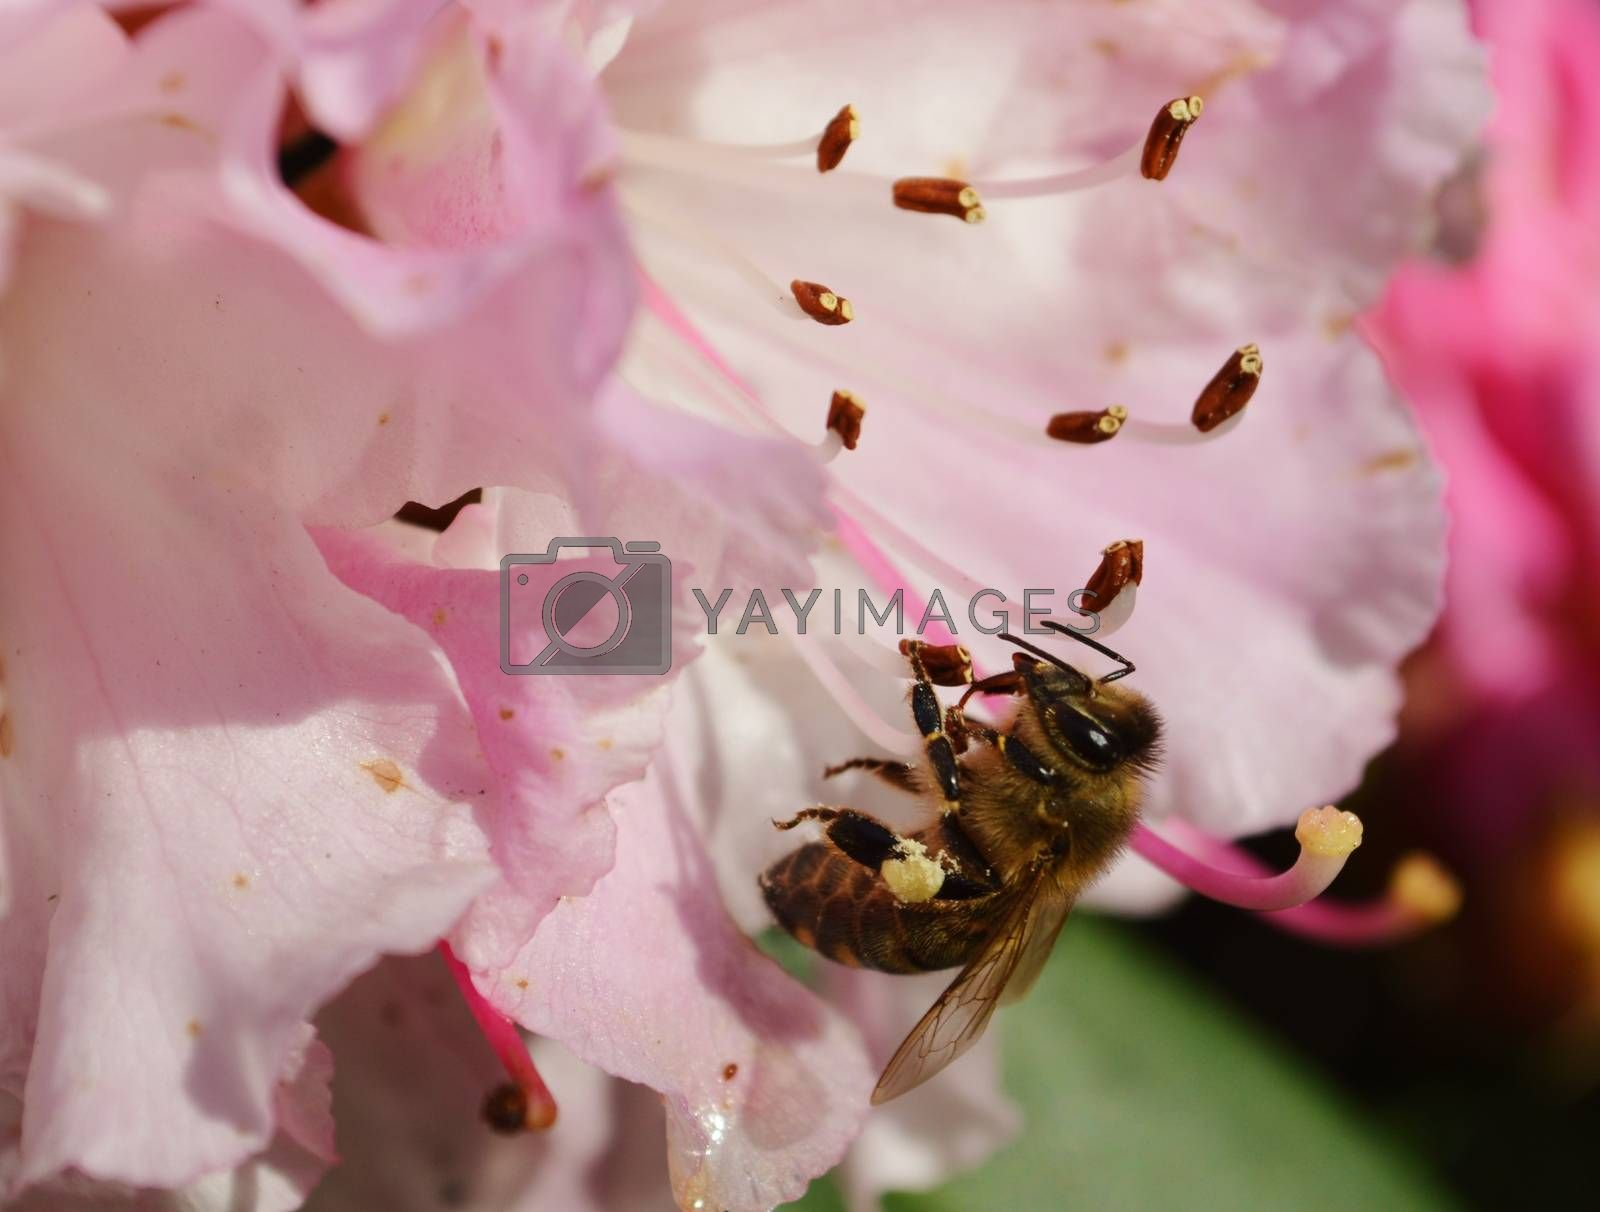 Royalty free image of Bee on a Rhododendron flower. by paulst